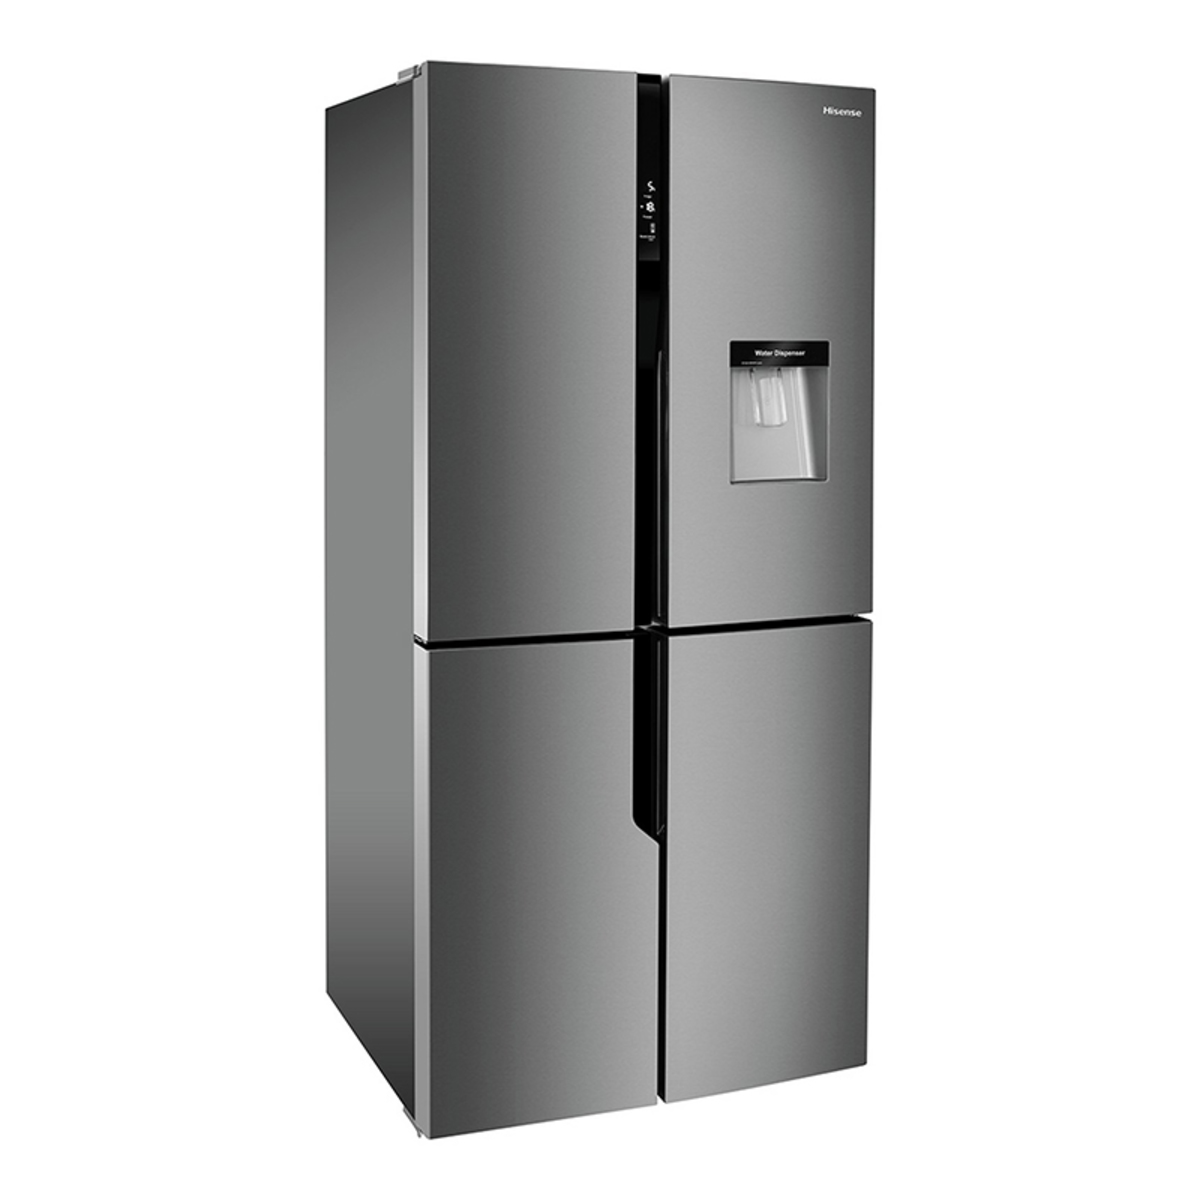 Compare prices for Hisense RQ560N4WC1 American Style Fridge Freezer Water Dispenser